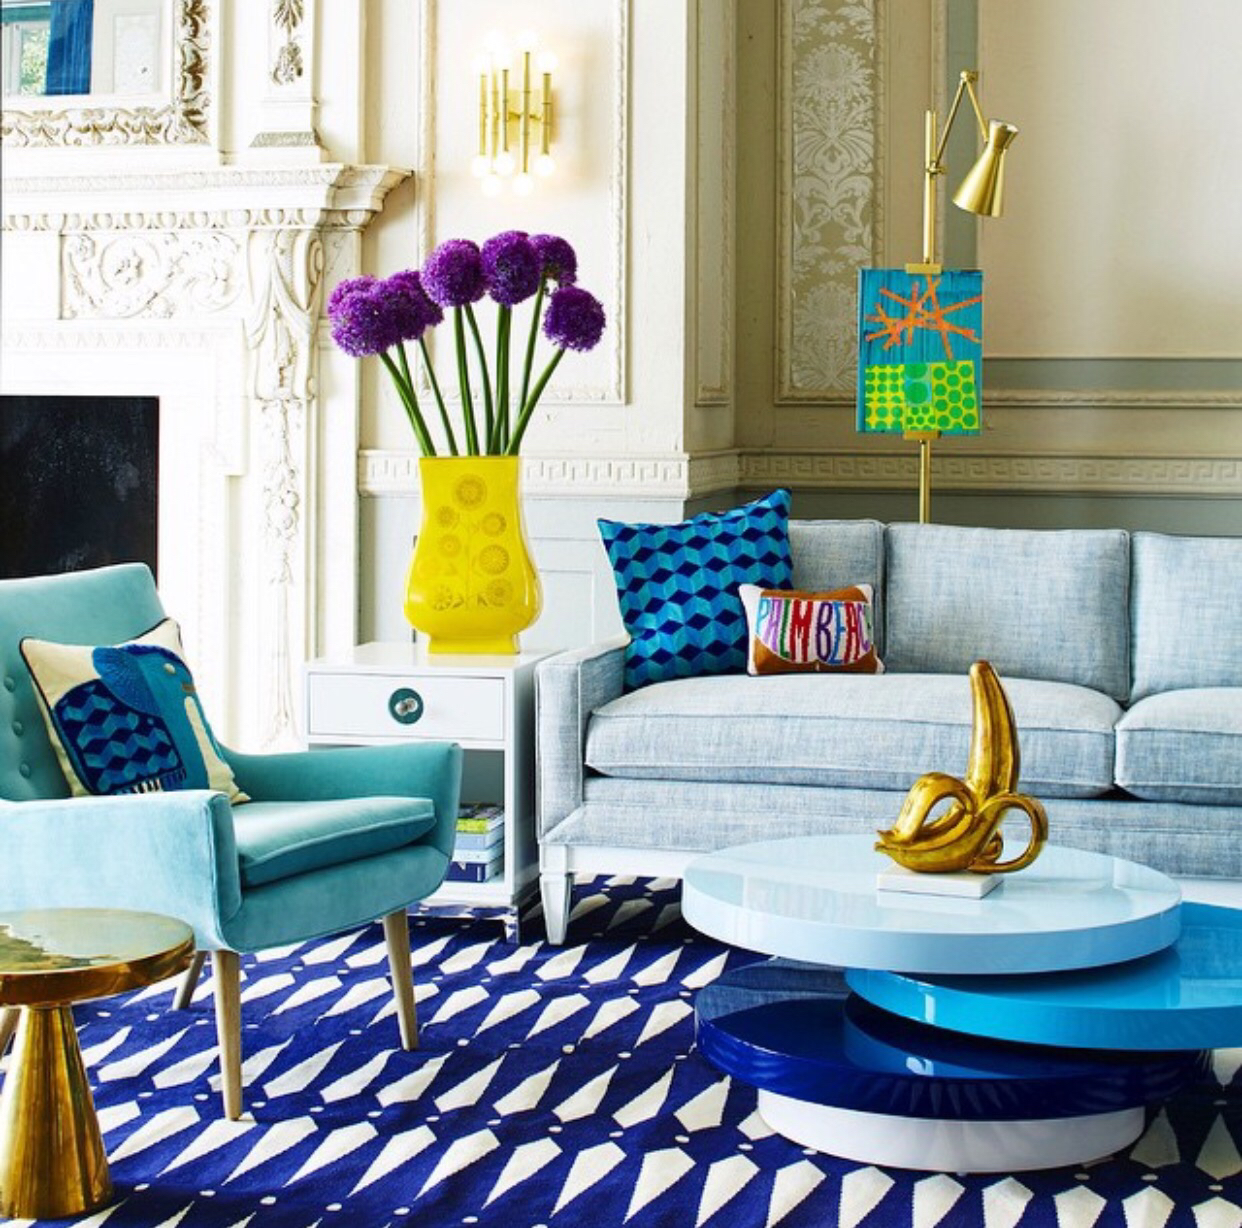 Jonathan Adler  winter living rooms 10 Cheerful Winter Living Rooms by Jonathan Adler 10 Cheerful Winter Living Rooms by Jonathan Adler8